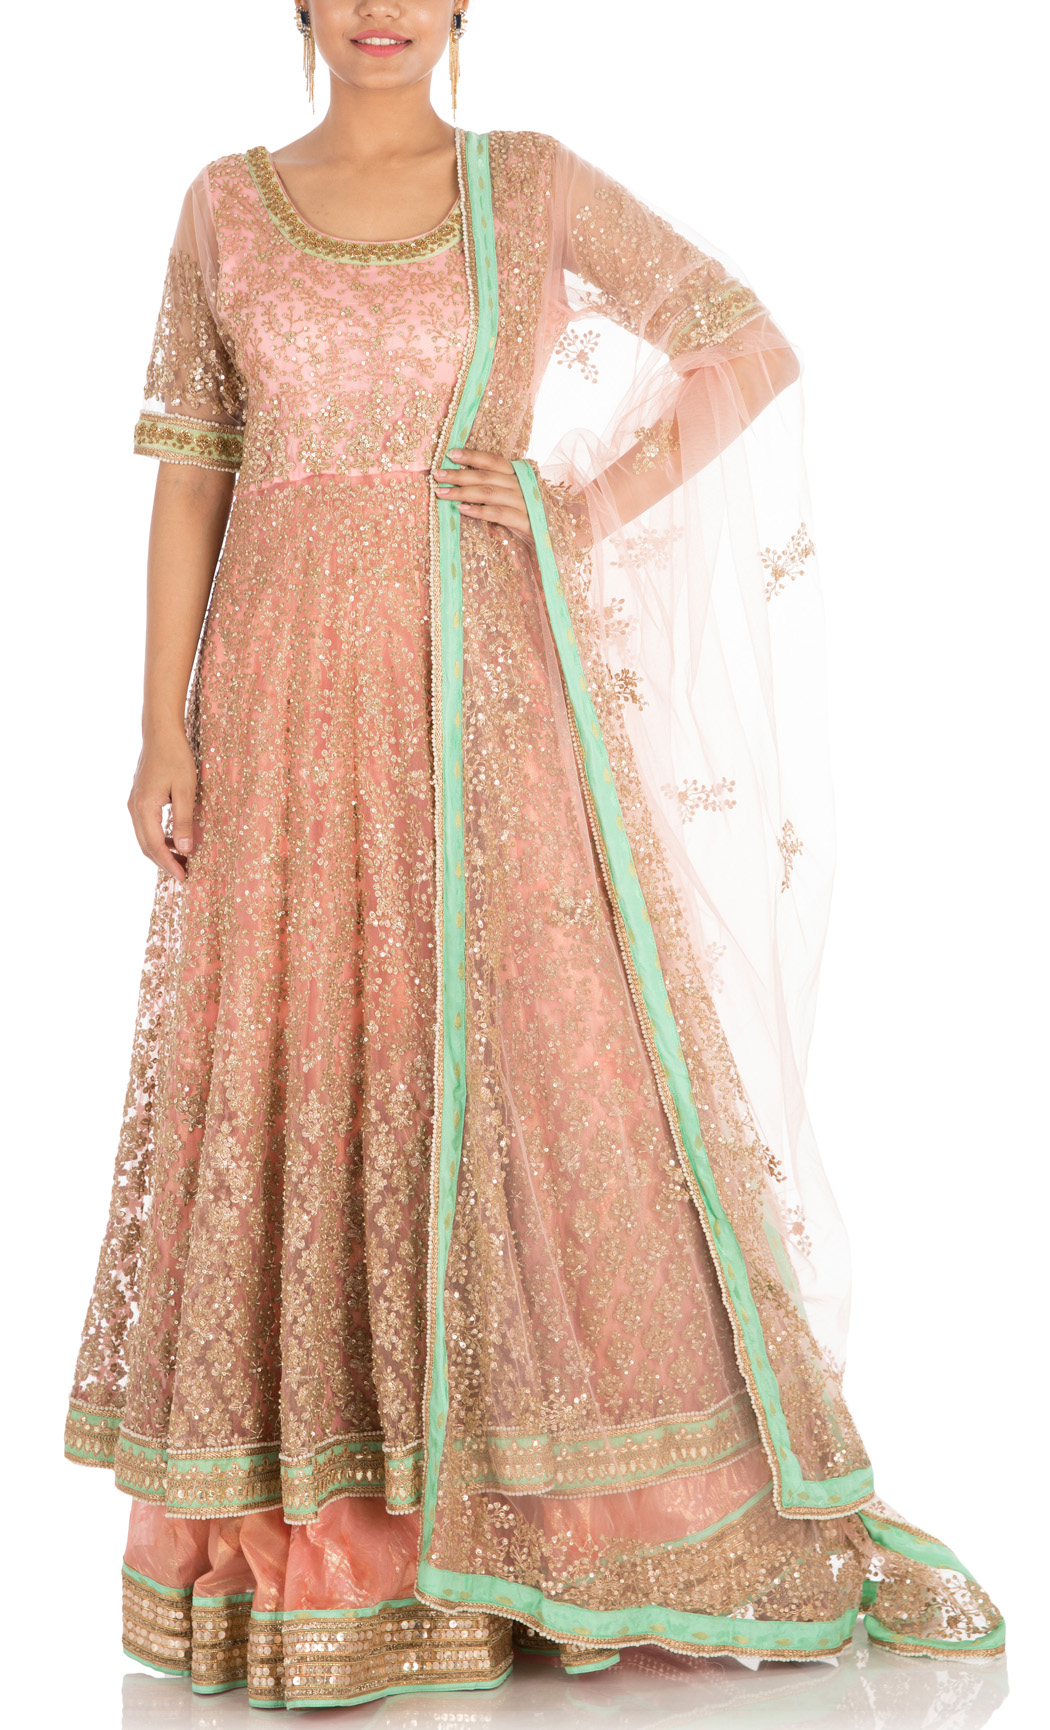 Peach Hand Embroidered Lehenga with Full Length Jacket